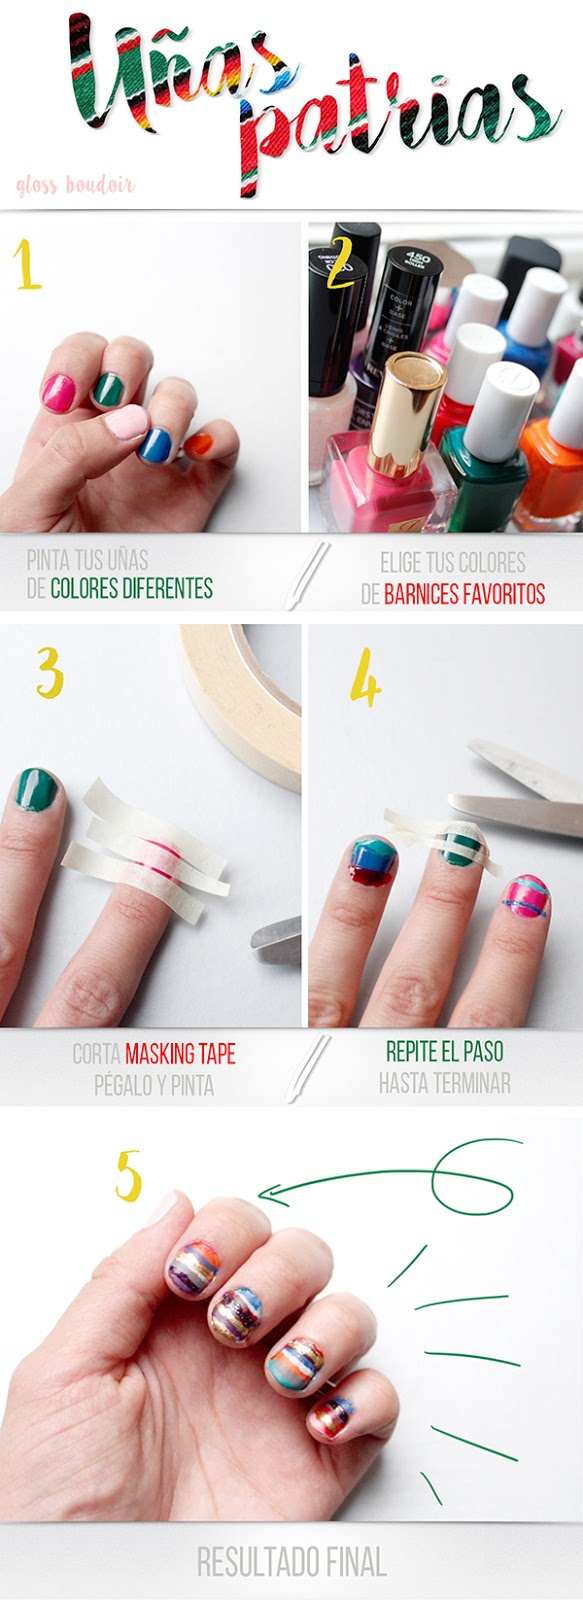 tutorial uñas mexicanas